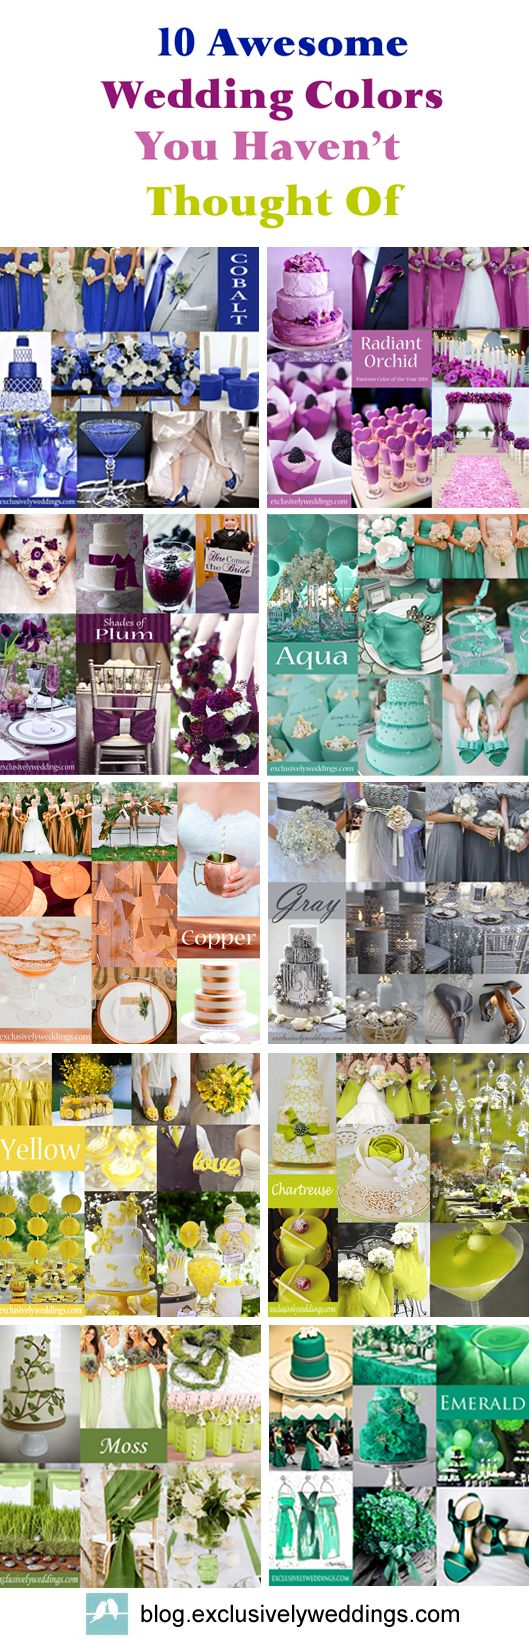 10 Awesome Wedding Colors You Haven't Thought Of ... Lots of great info for brides looking for ideas and inspiration.